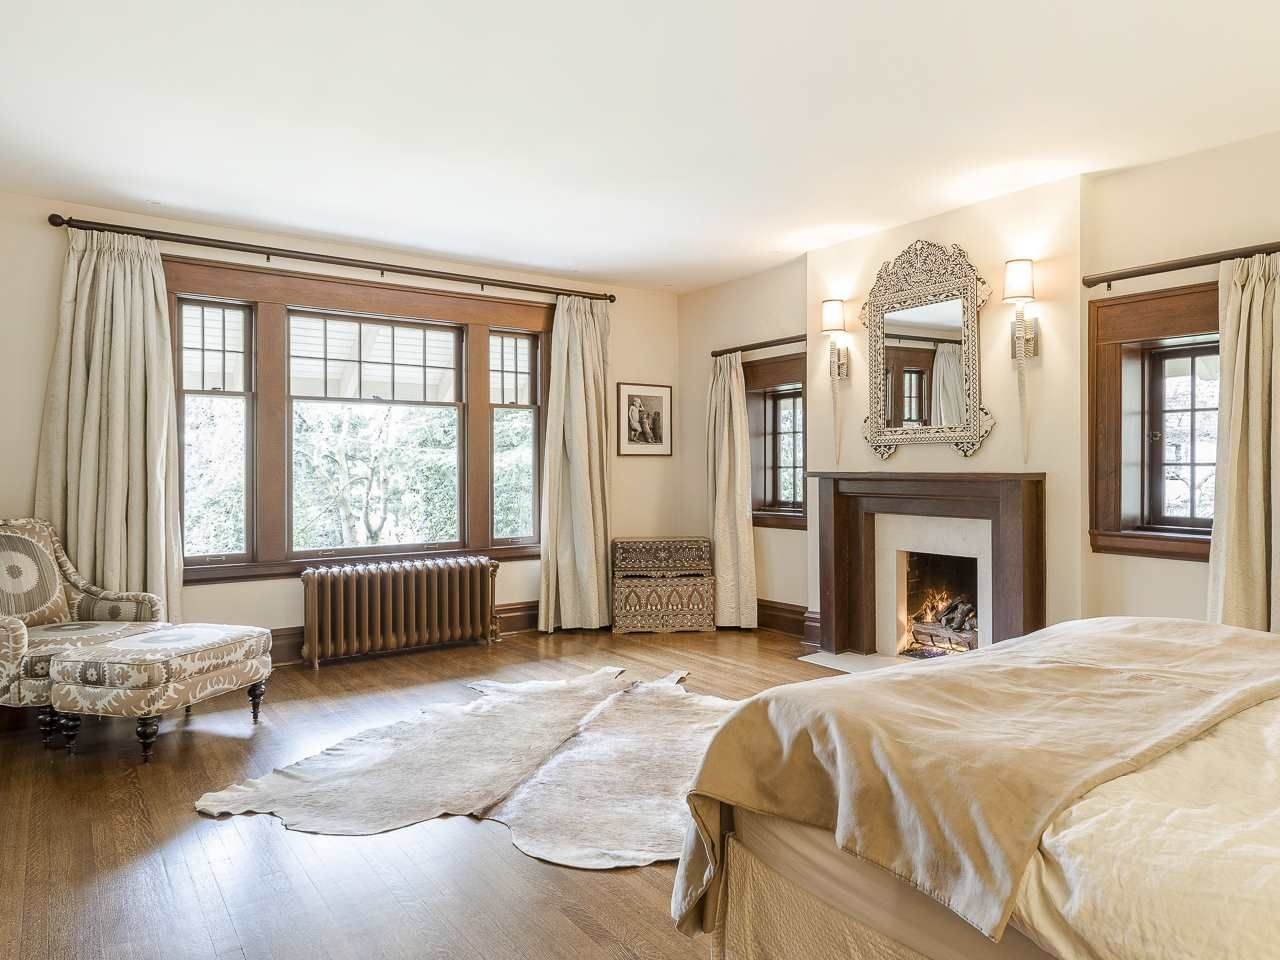 Photo 12: Photos: 3369 THE CRESCENT in Vancouver: Shaughnessy House for sale (Vancouver West)  : MLS®# R2534743